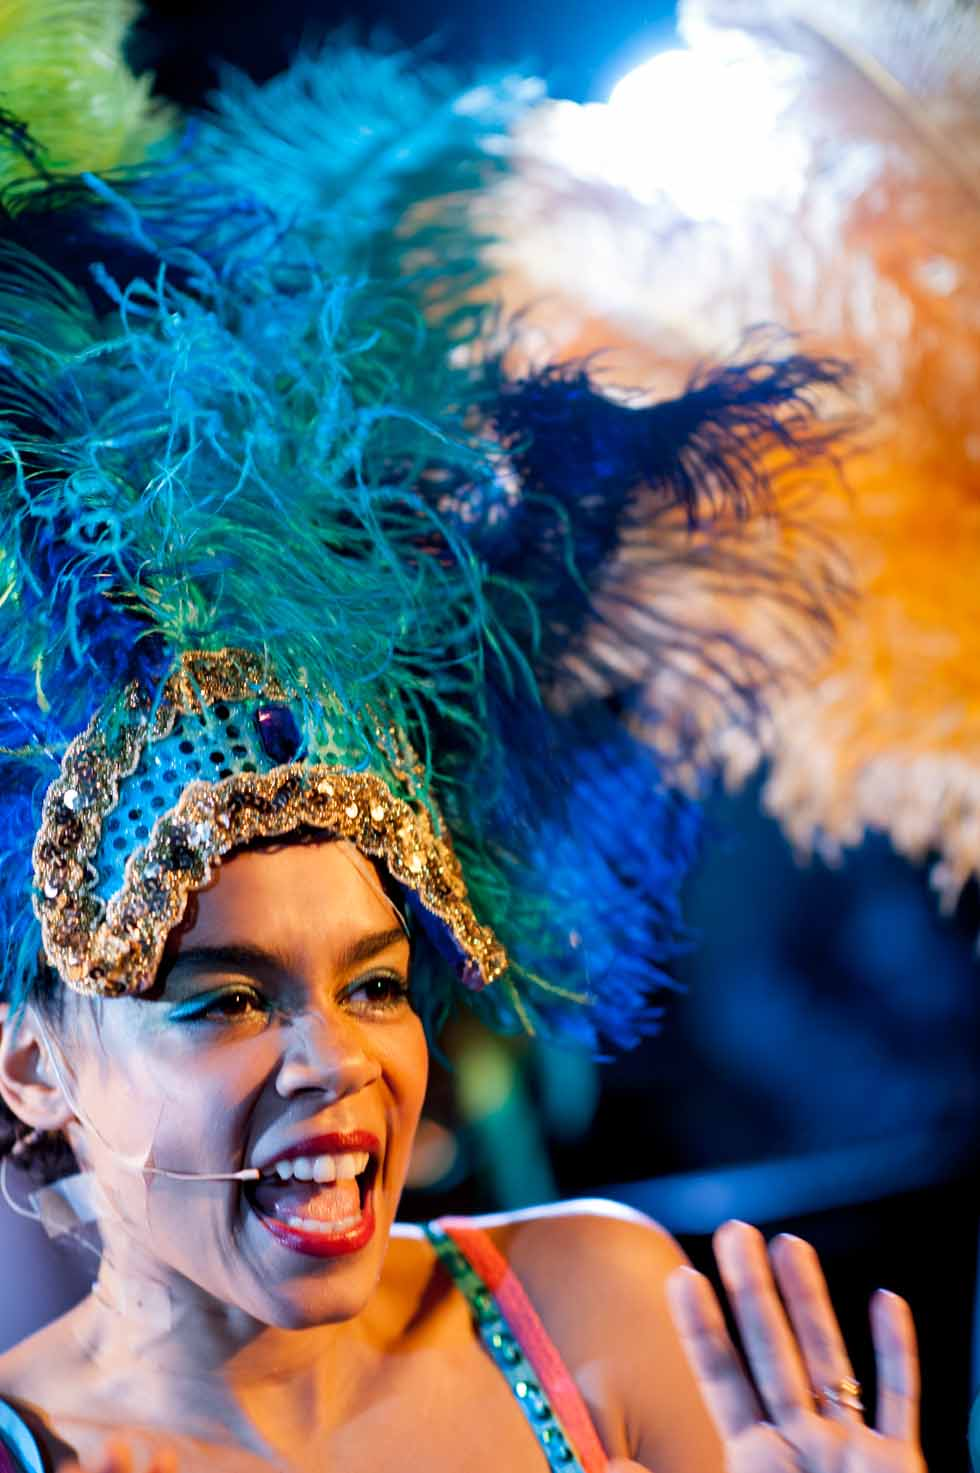 zum-schneider-nyc-2014-karneval_international-2753.jpg